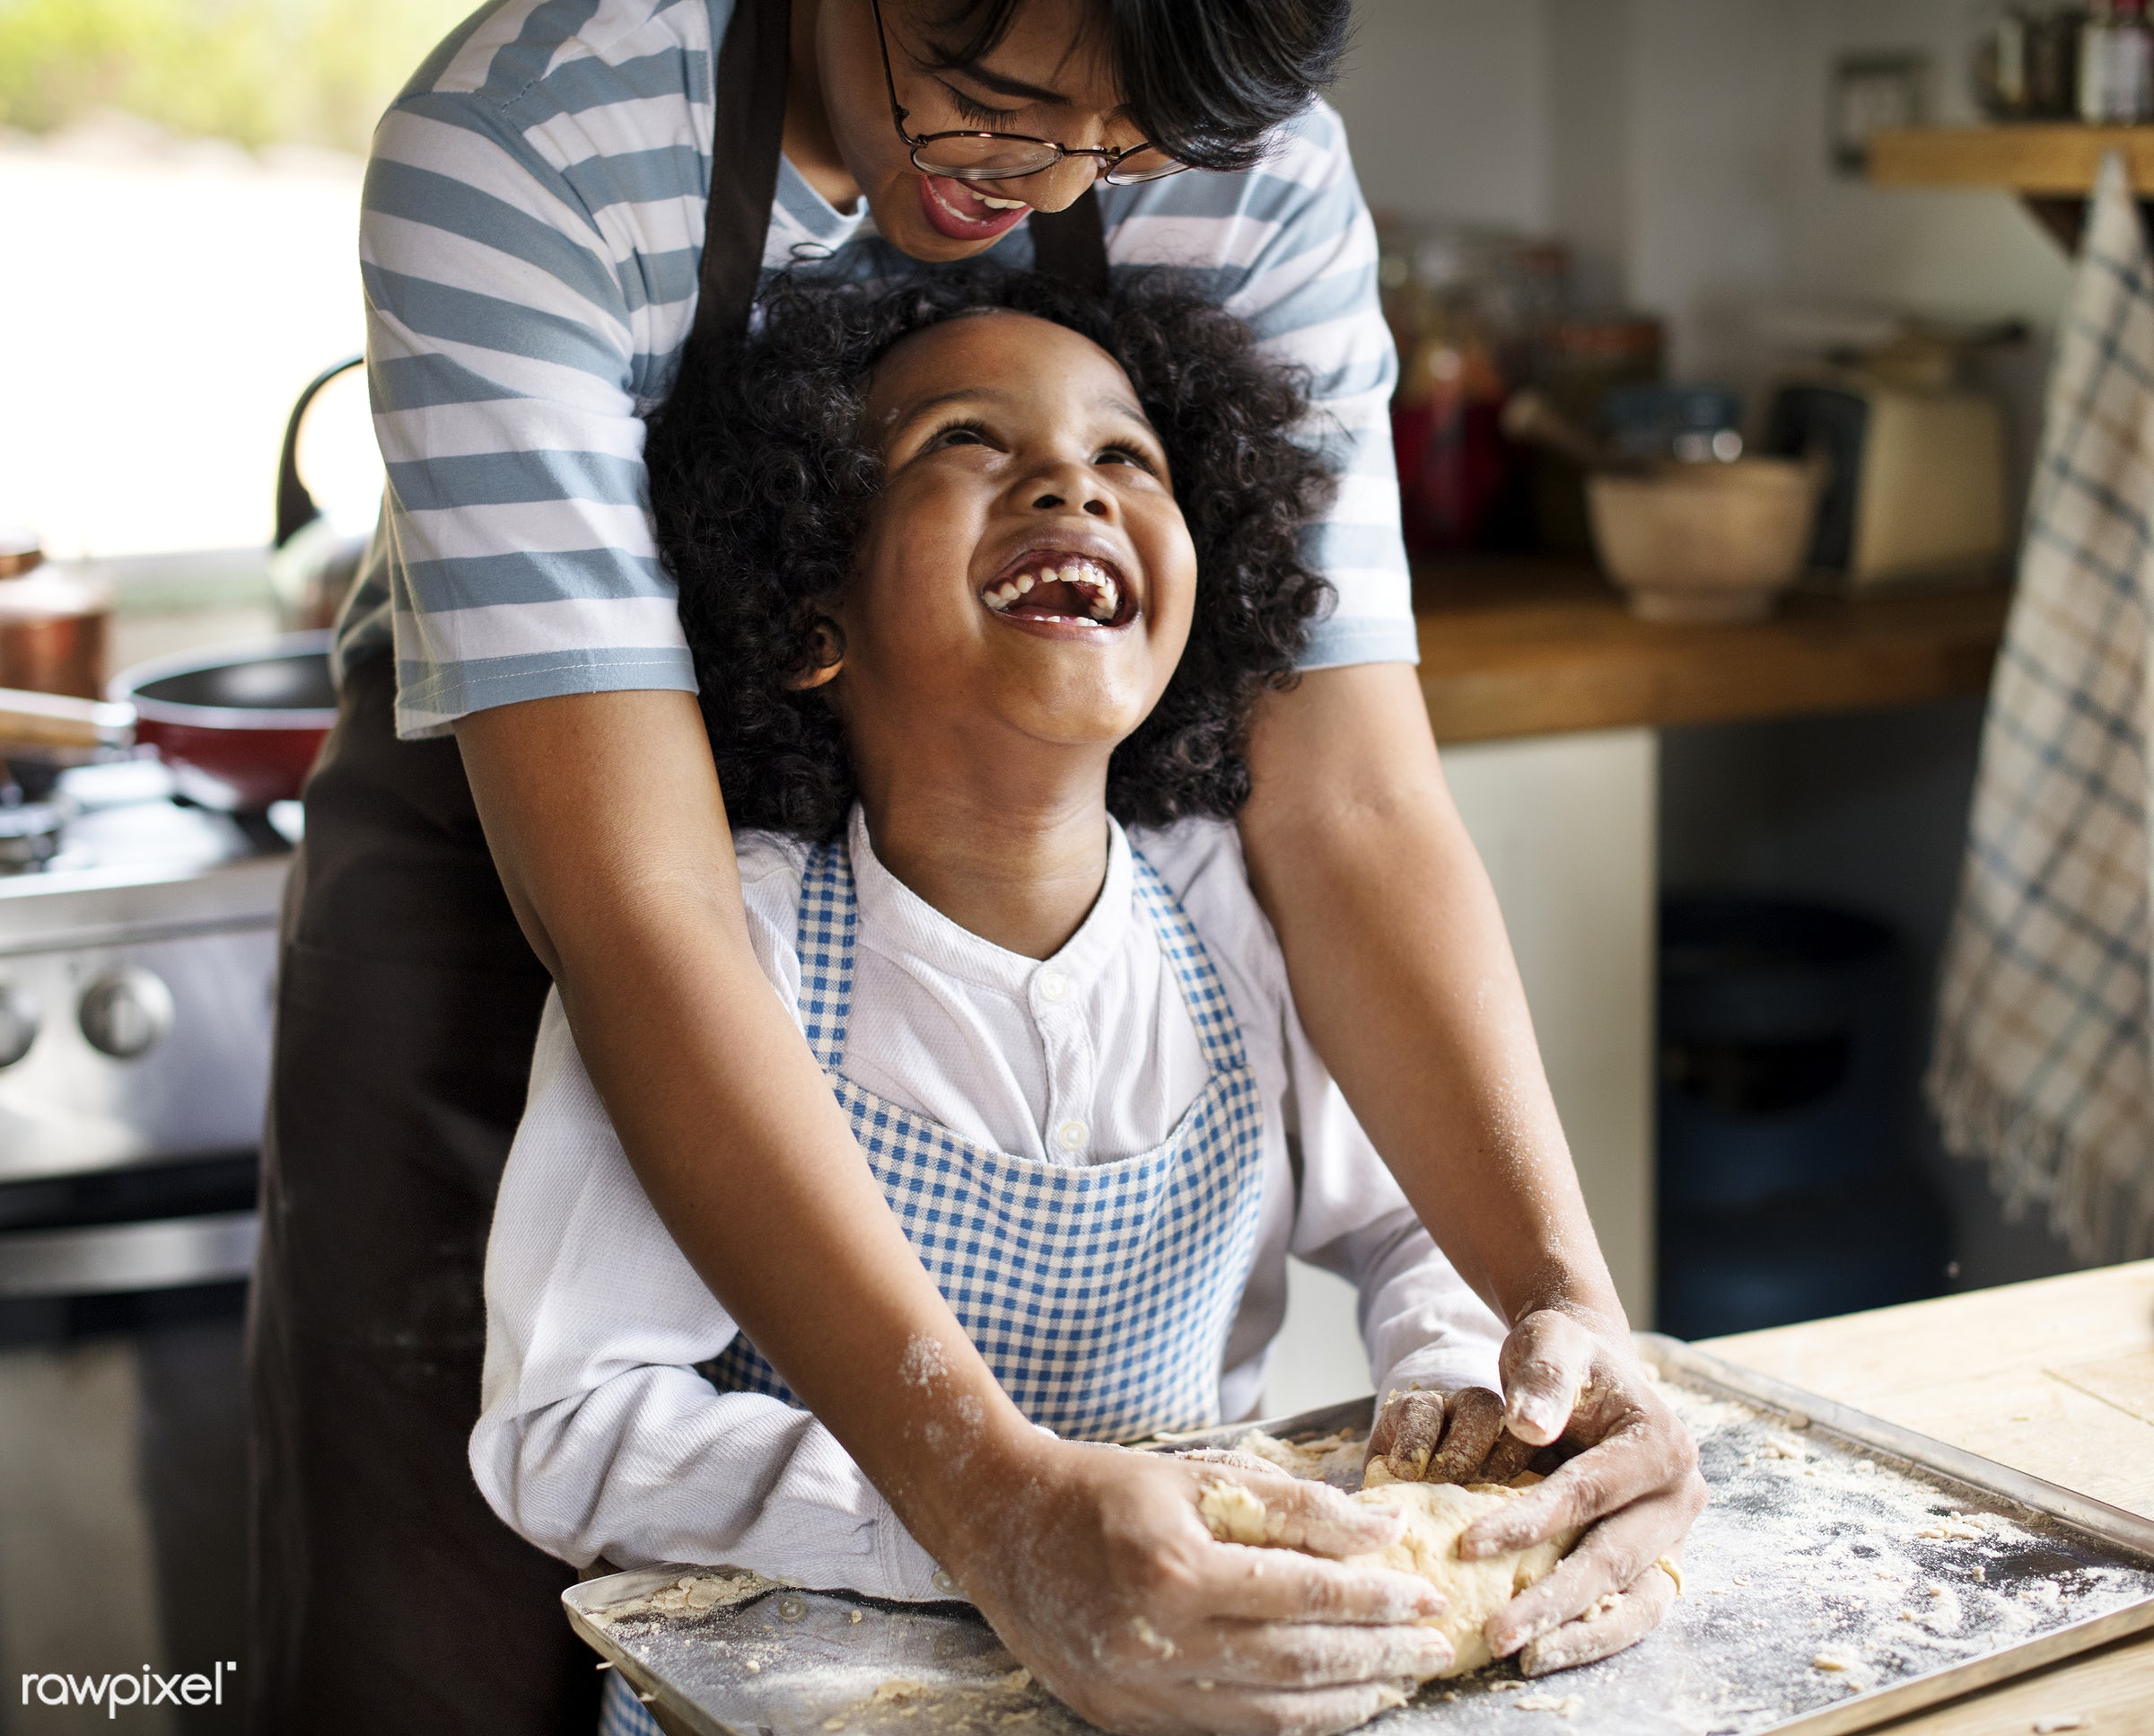 Mother and son kneading dough in the kitchen - activity, african american, african descent, afro, apron, asian, bake, baking...